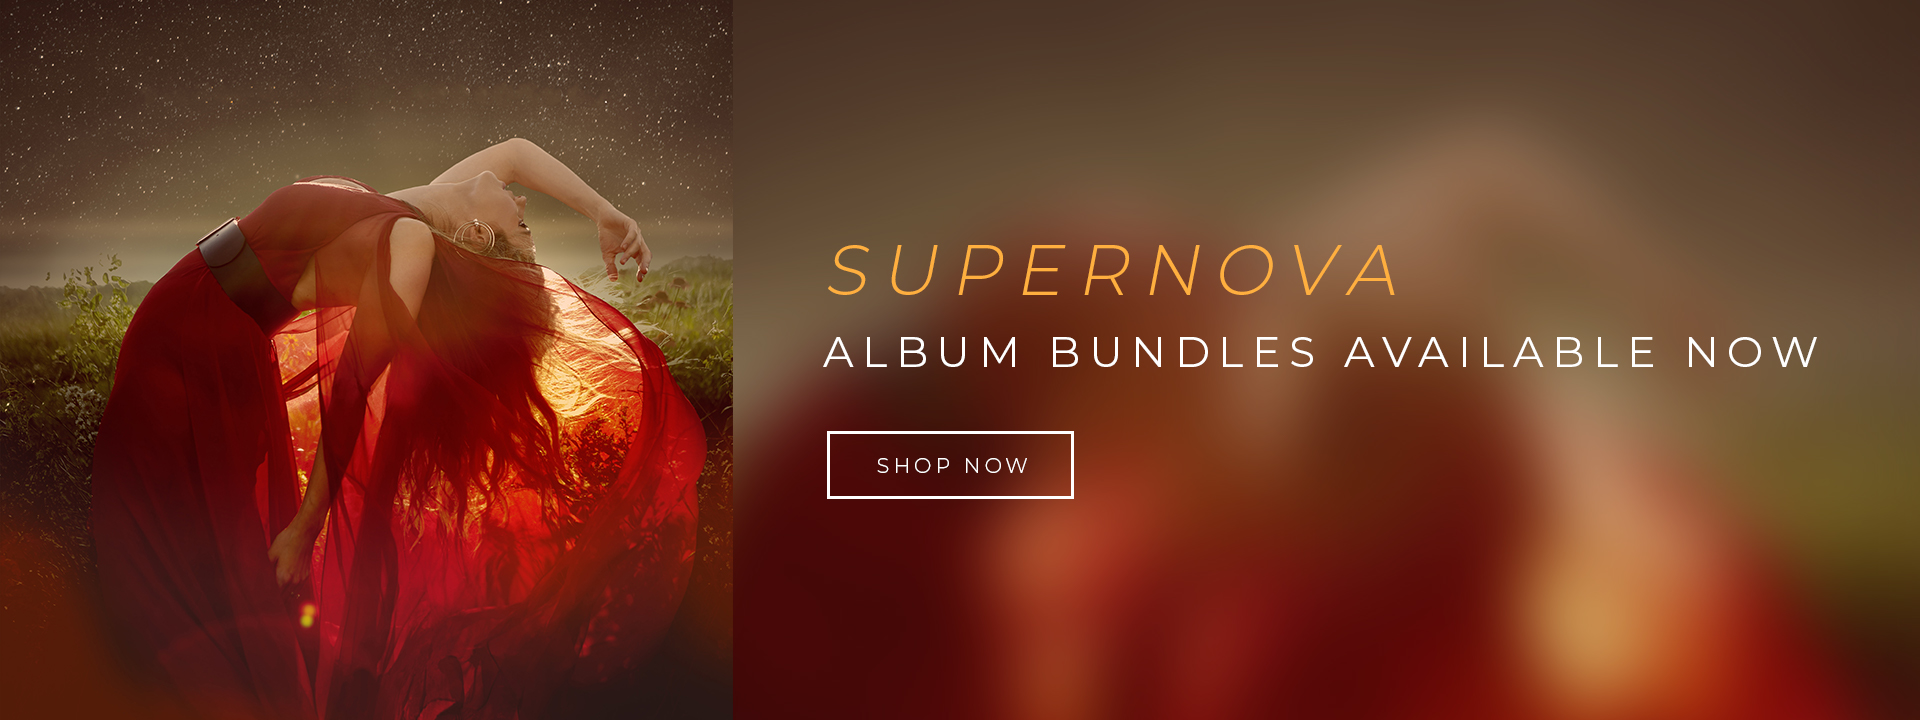 Caitlyn Smith | Supernova | Album Bundles | Shop Now